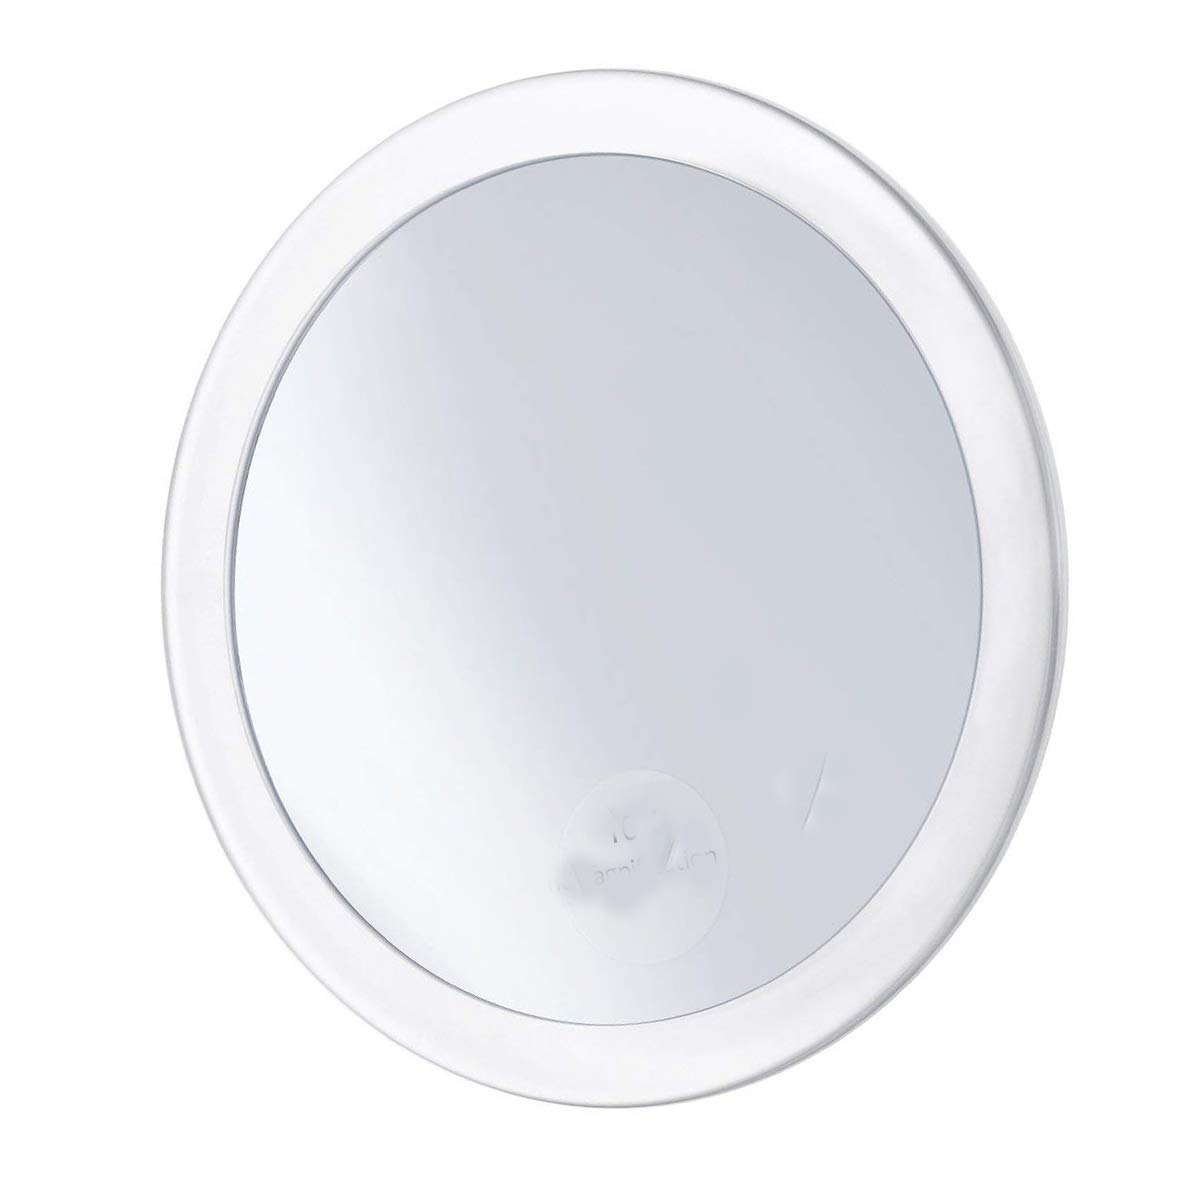 Xelparuc 10X Magnifying Mirror with 3 Suction Cups, Cosmetic Make Up Mirror Folding Pocket Mirror 5.9 Inch (White)